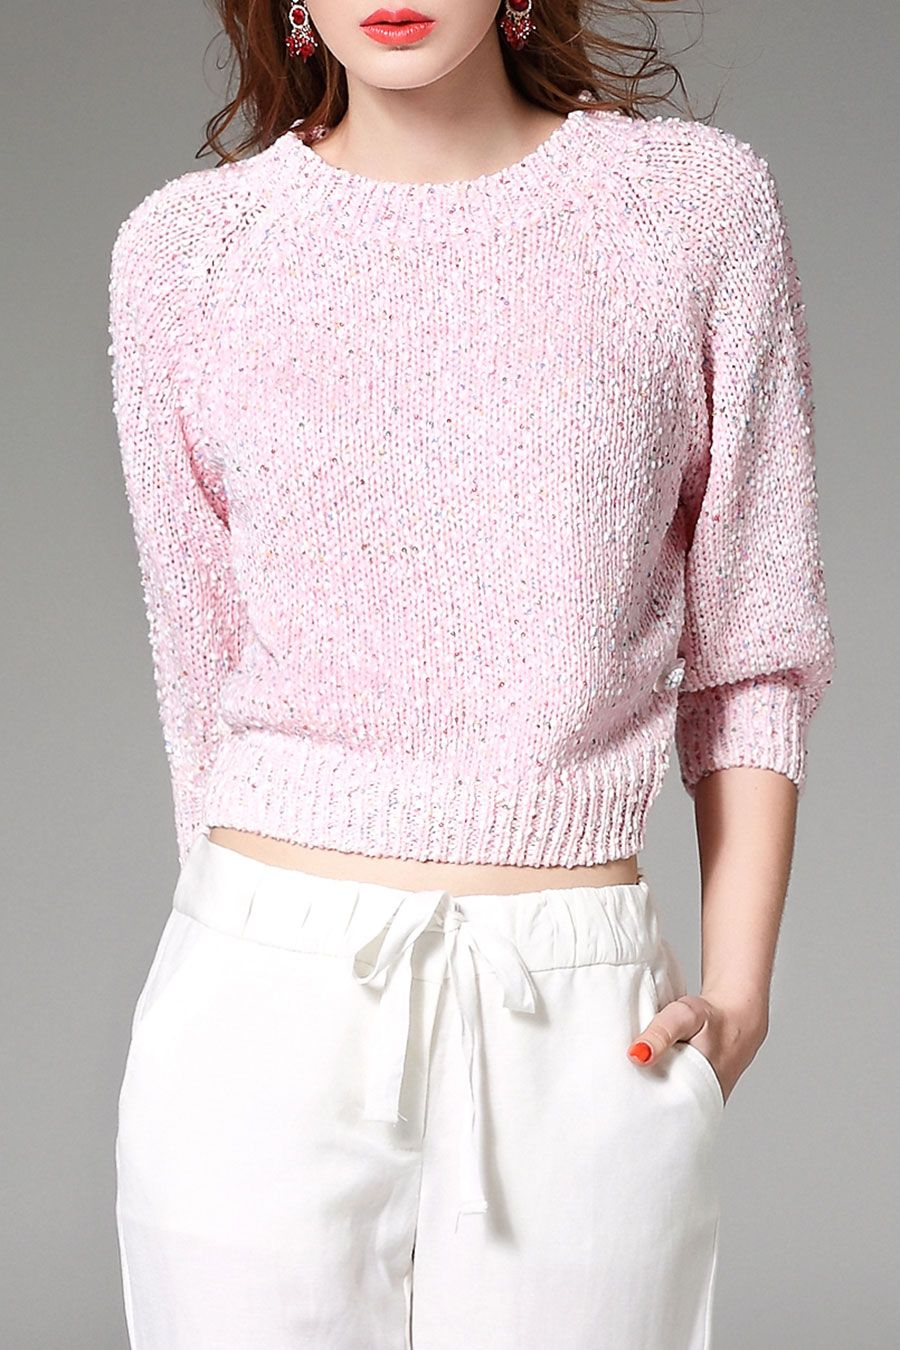 Nexiia Pink Short Sequined Sweater | Sweaters at DEZZAL